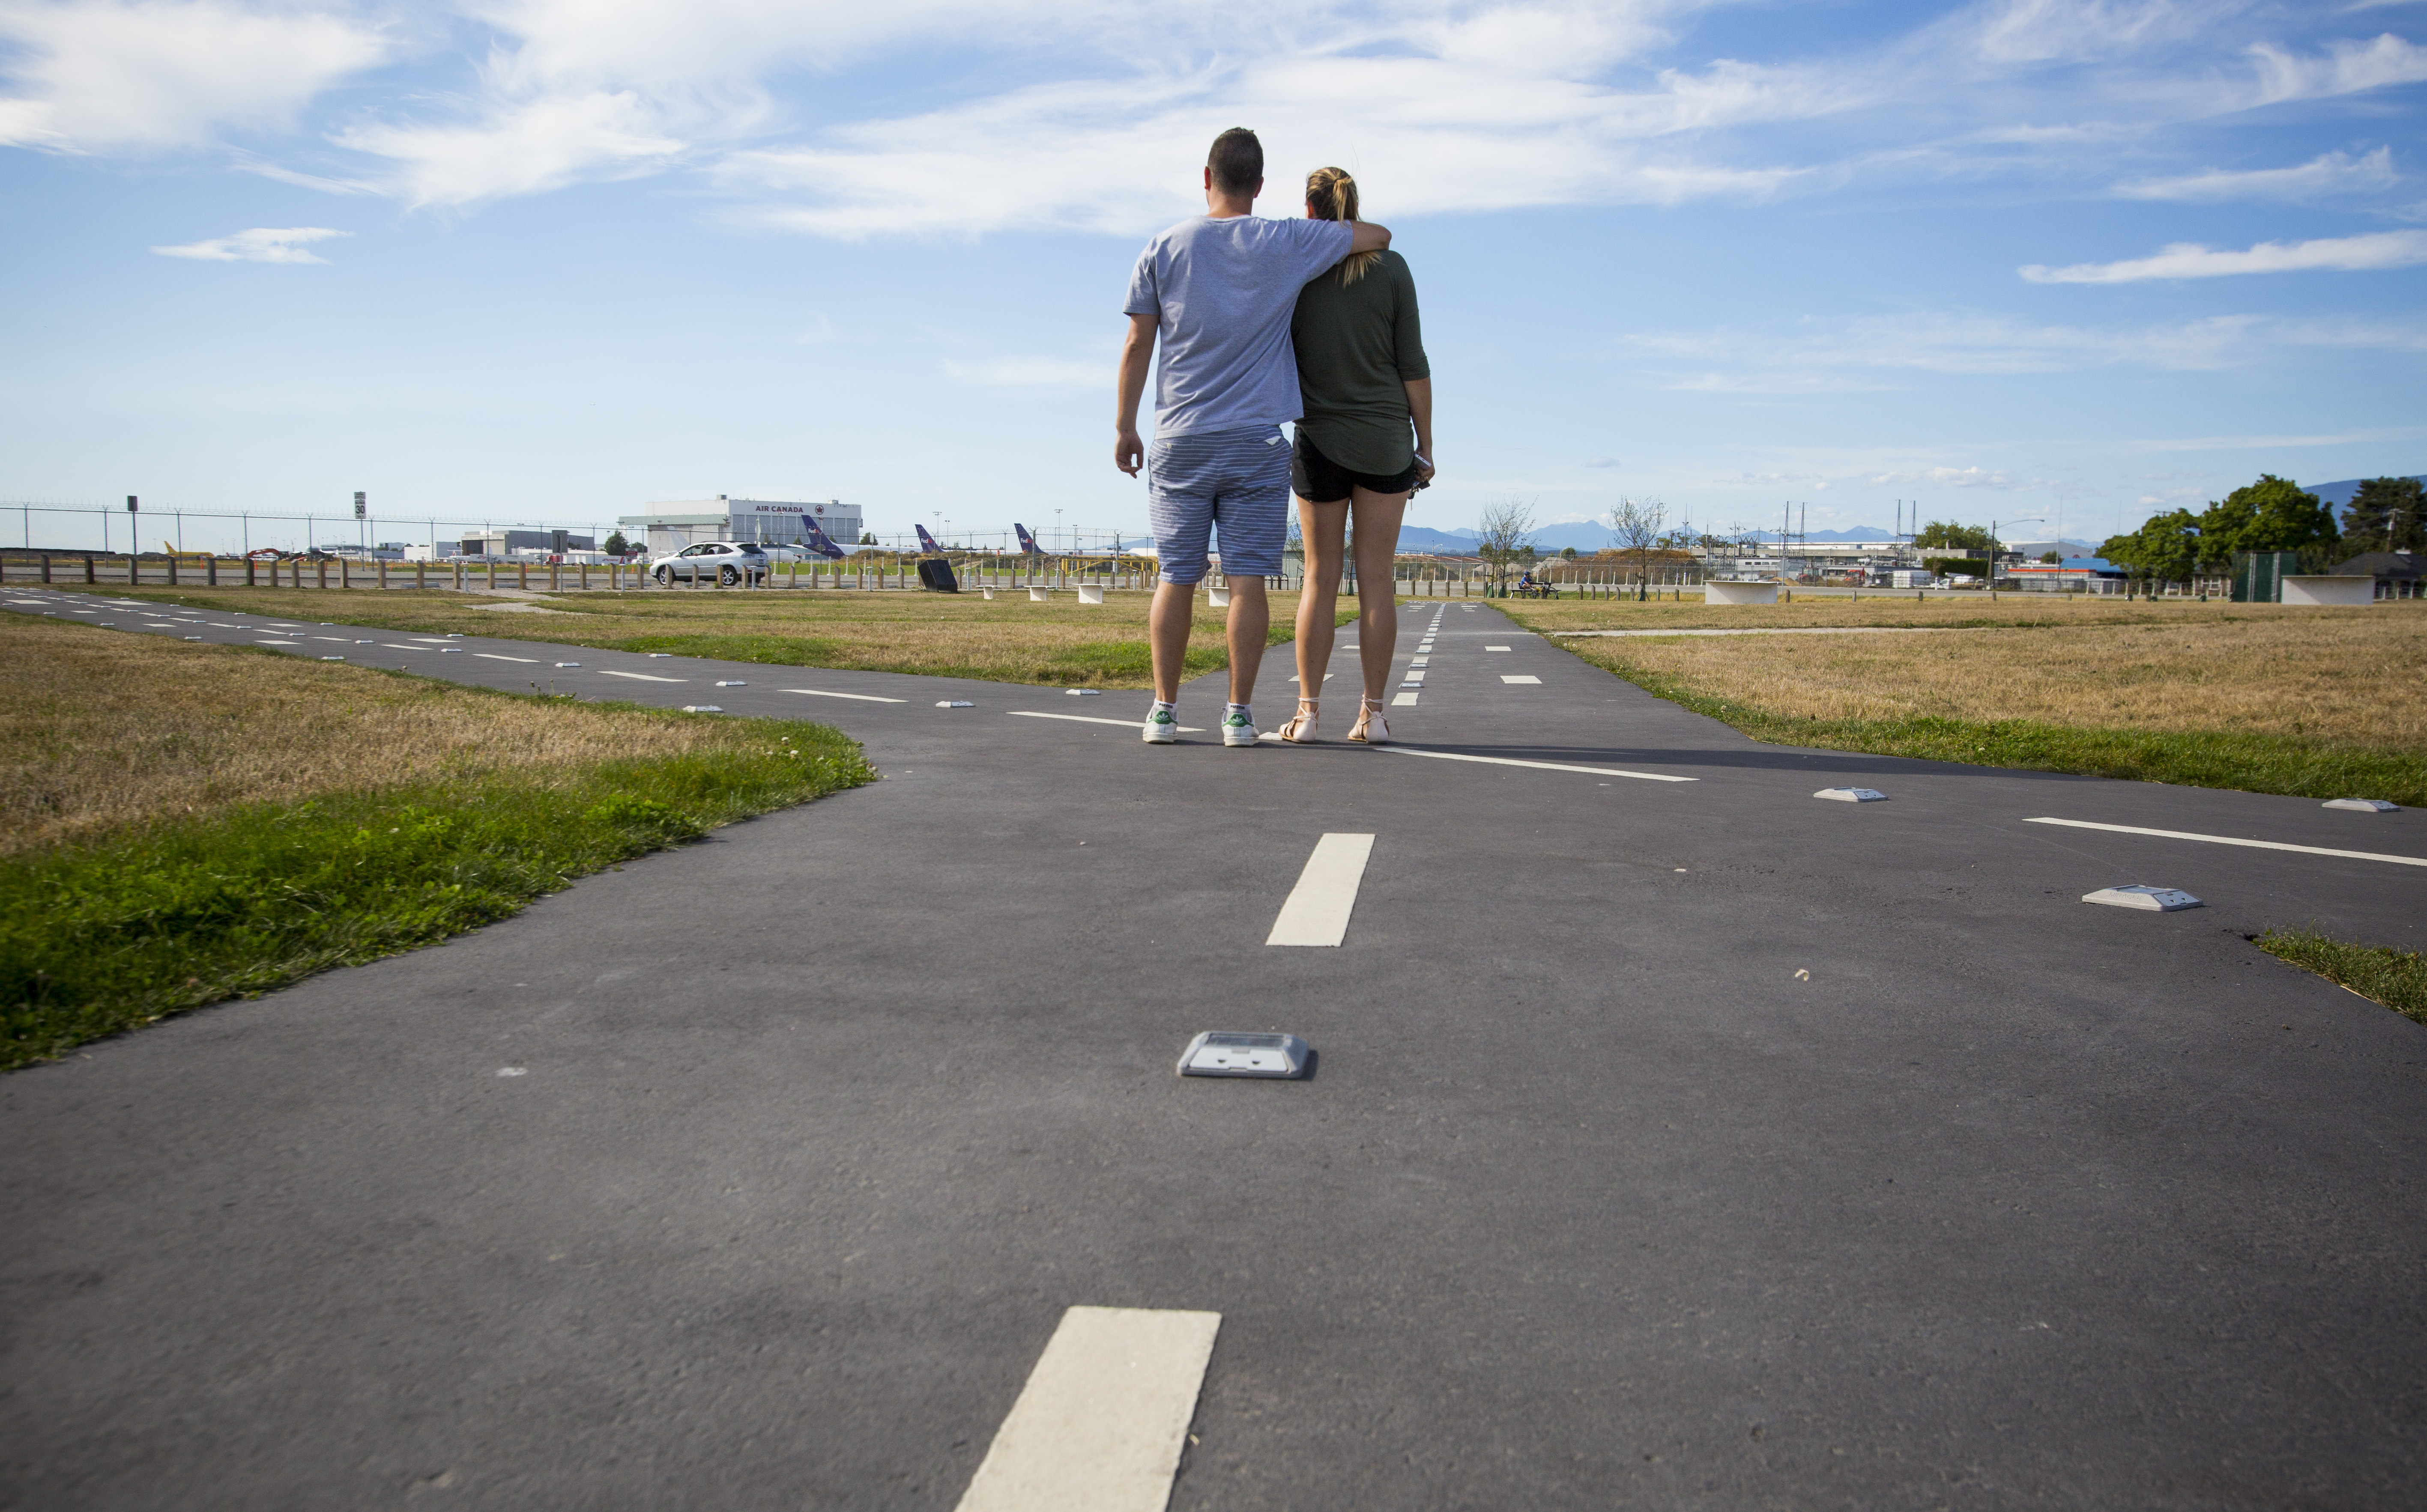 A couple at flight path park watching planes land.